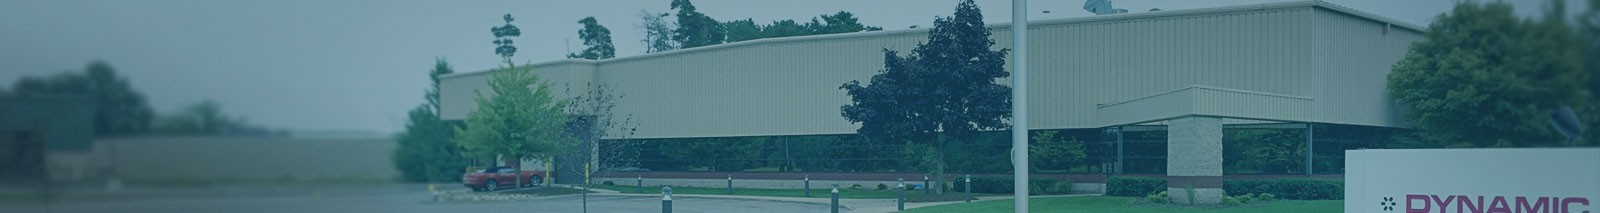 Dynamic Conveyor Corporate Headquarters